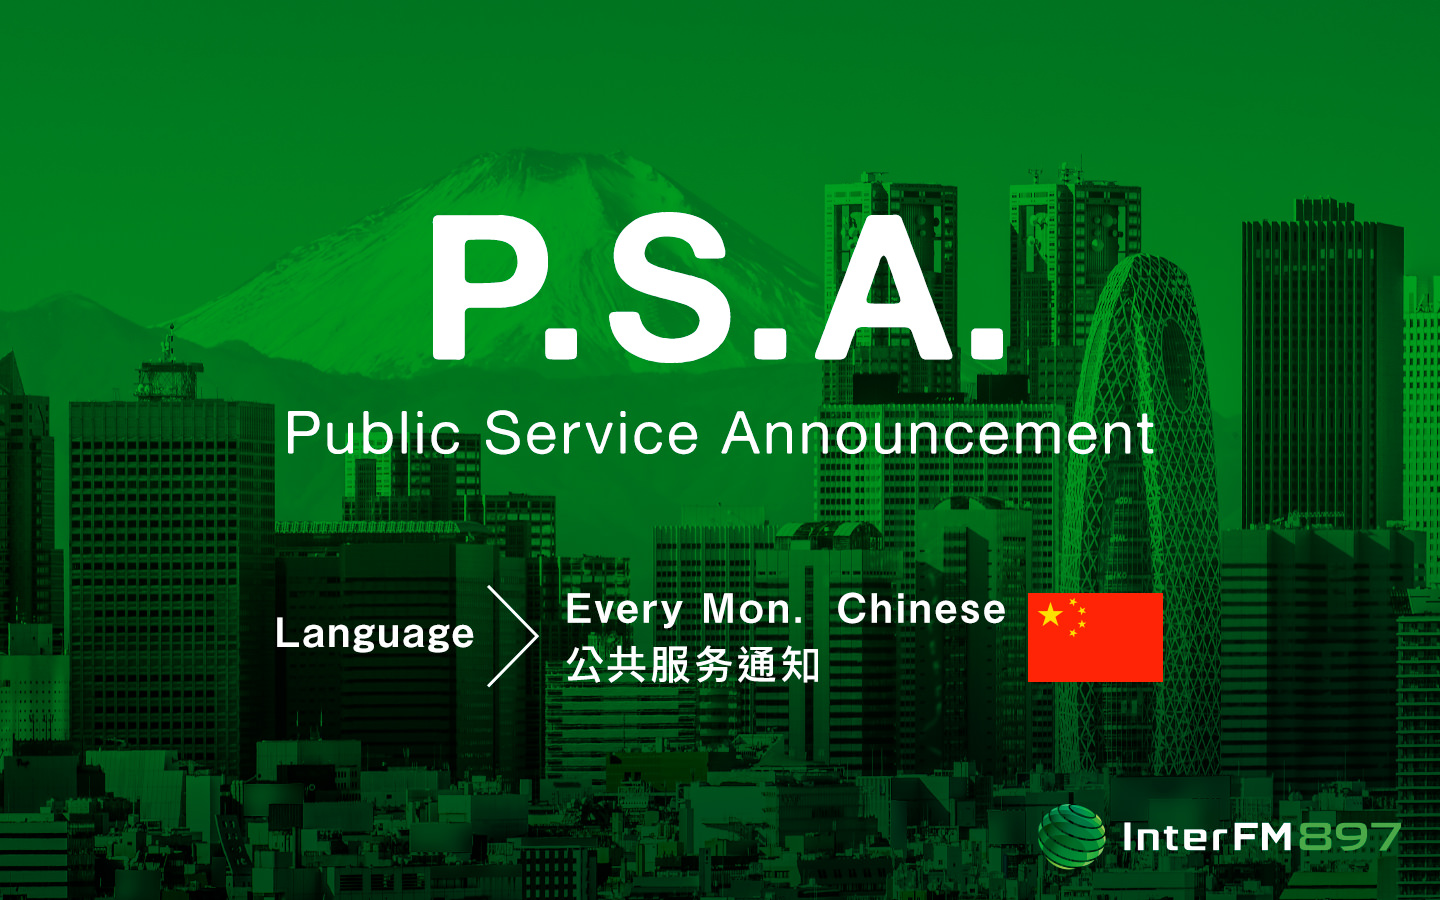 公共服务通知 - Public Service Announcement (中文 - Chinese)